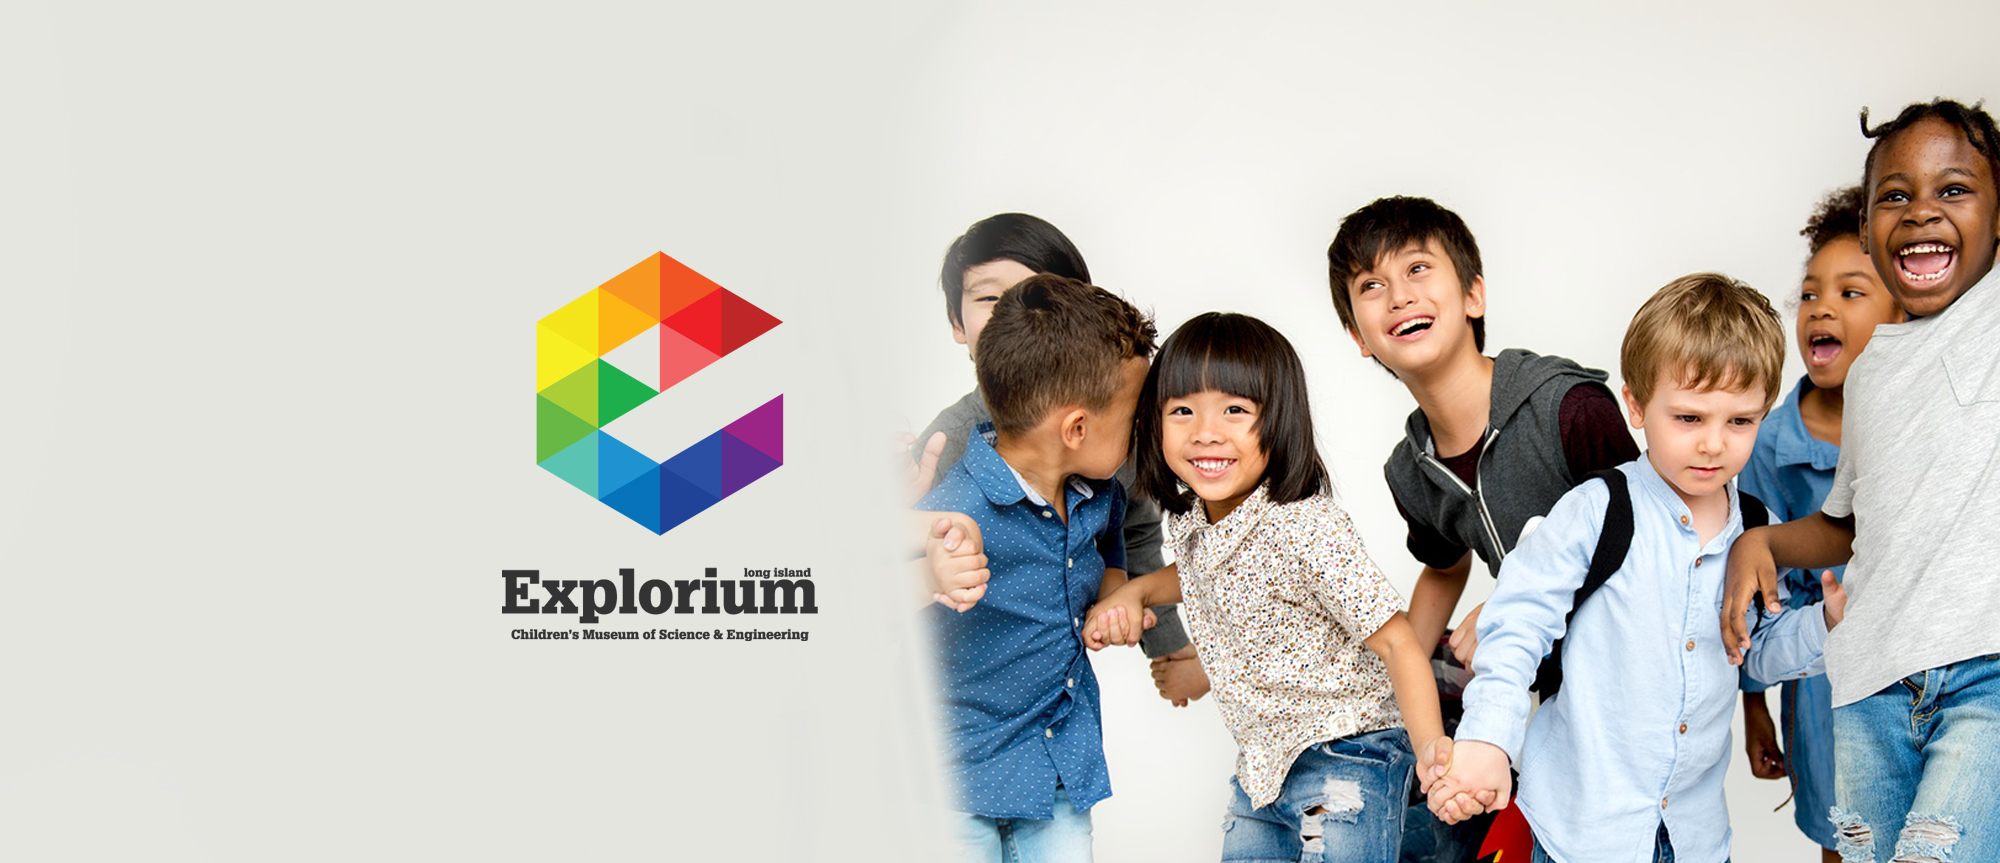 header image for the Long Island Explorium of a group of happy children